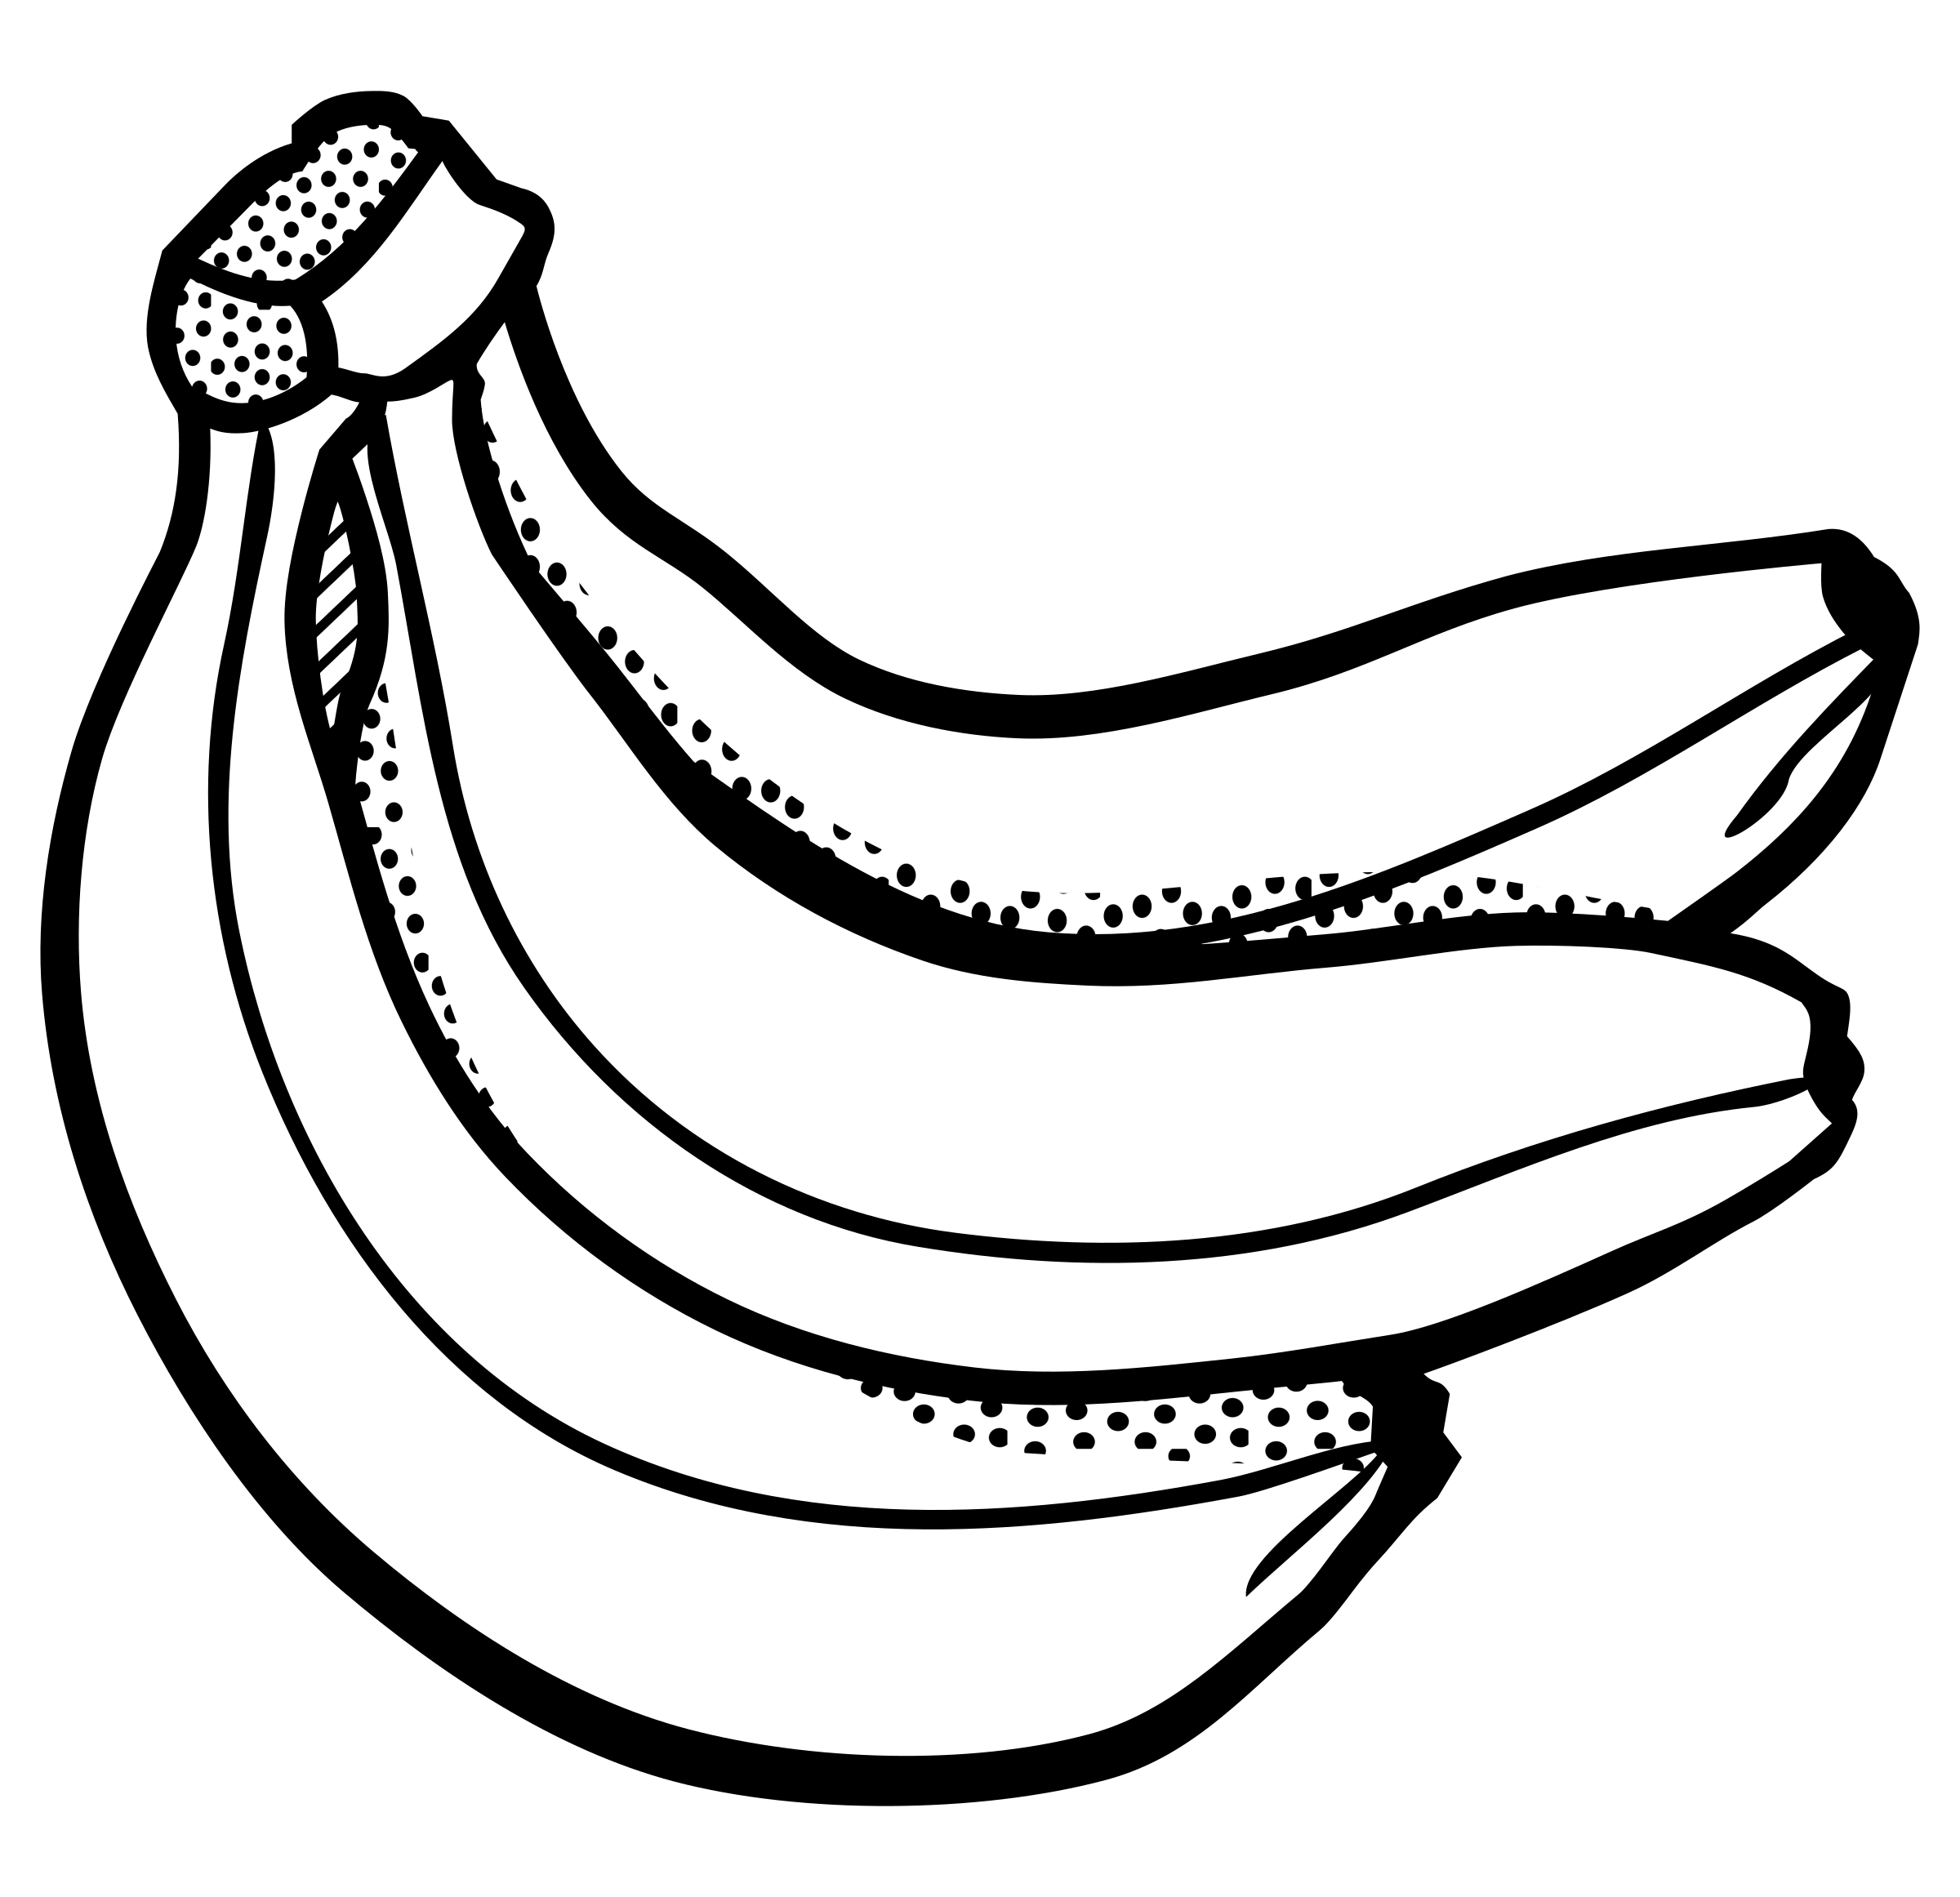 Clipart - bunch of bananas - lineart